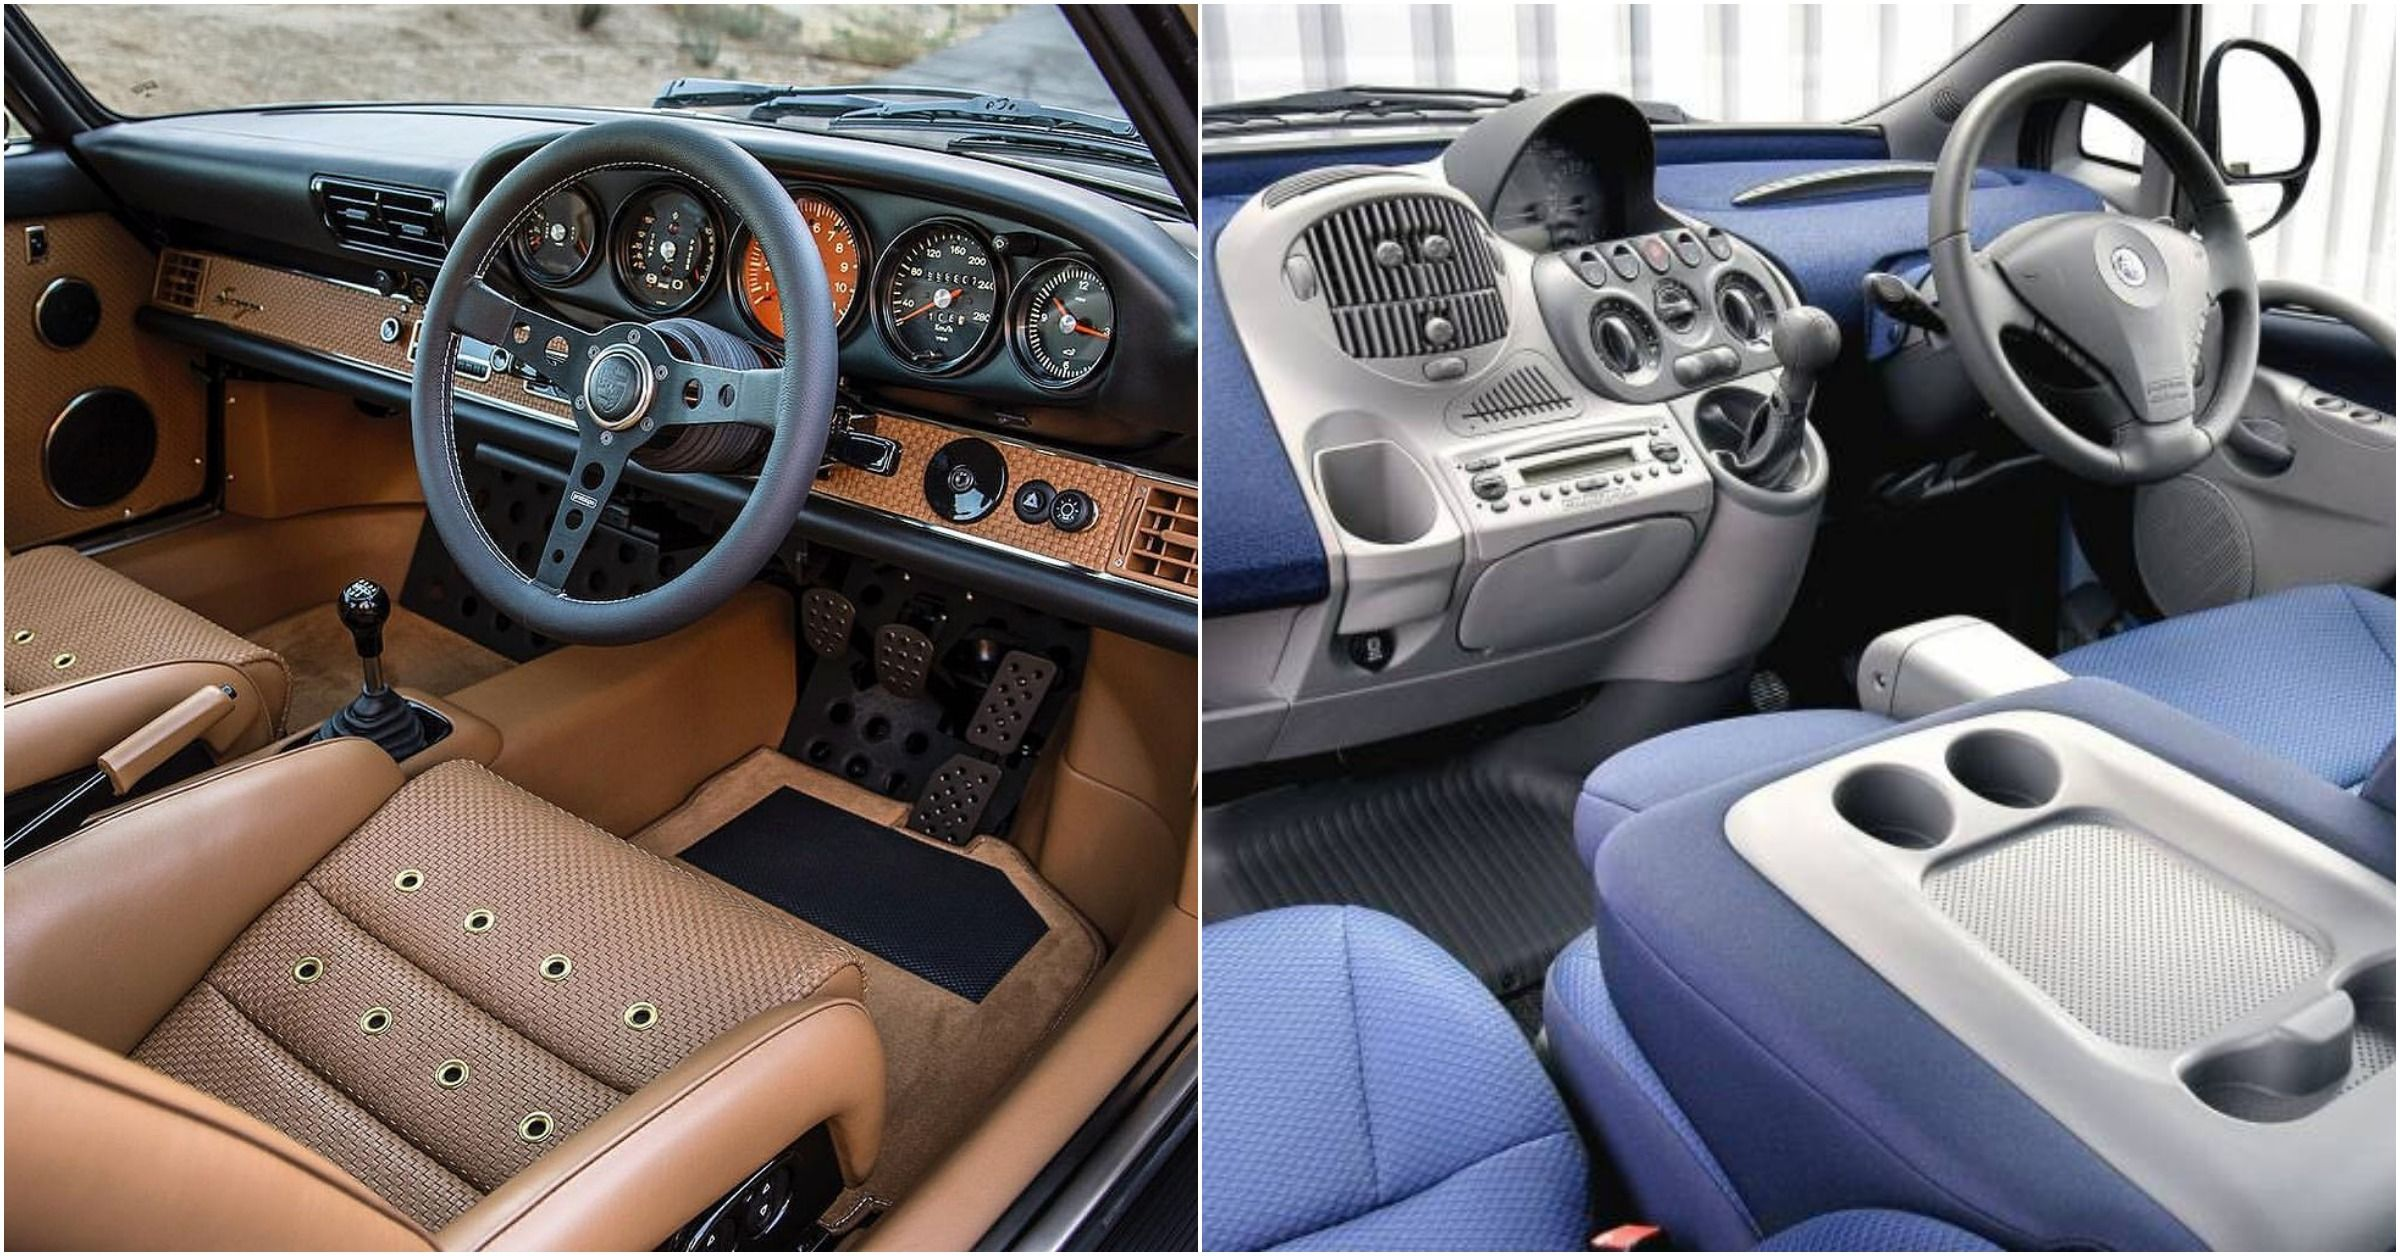 10 Ugliest Car Interiors Ever Made (5 That Are Stunning)